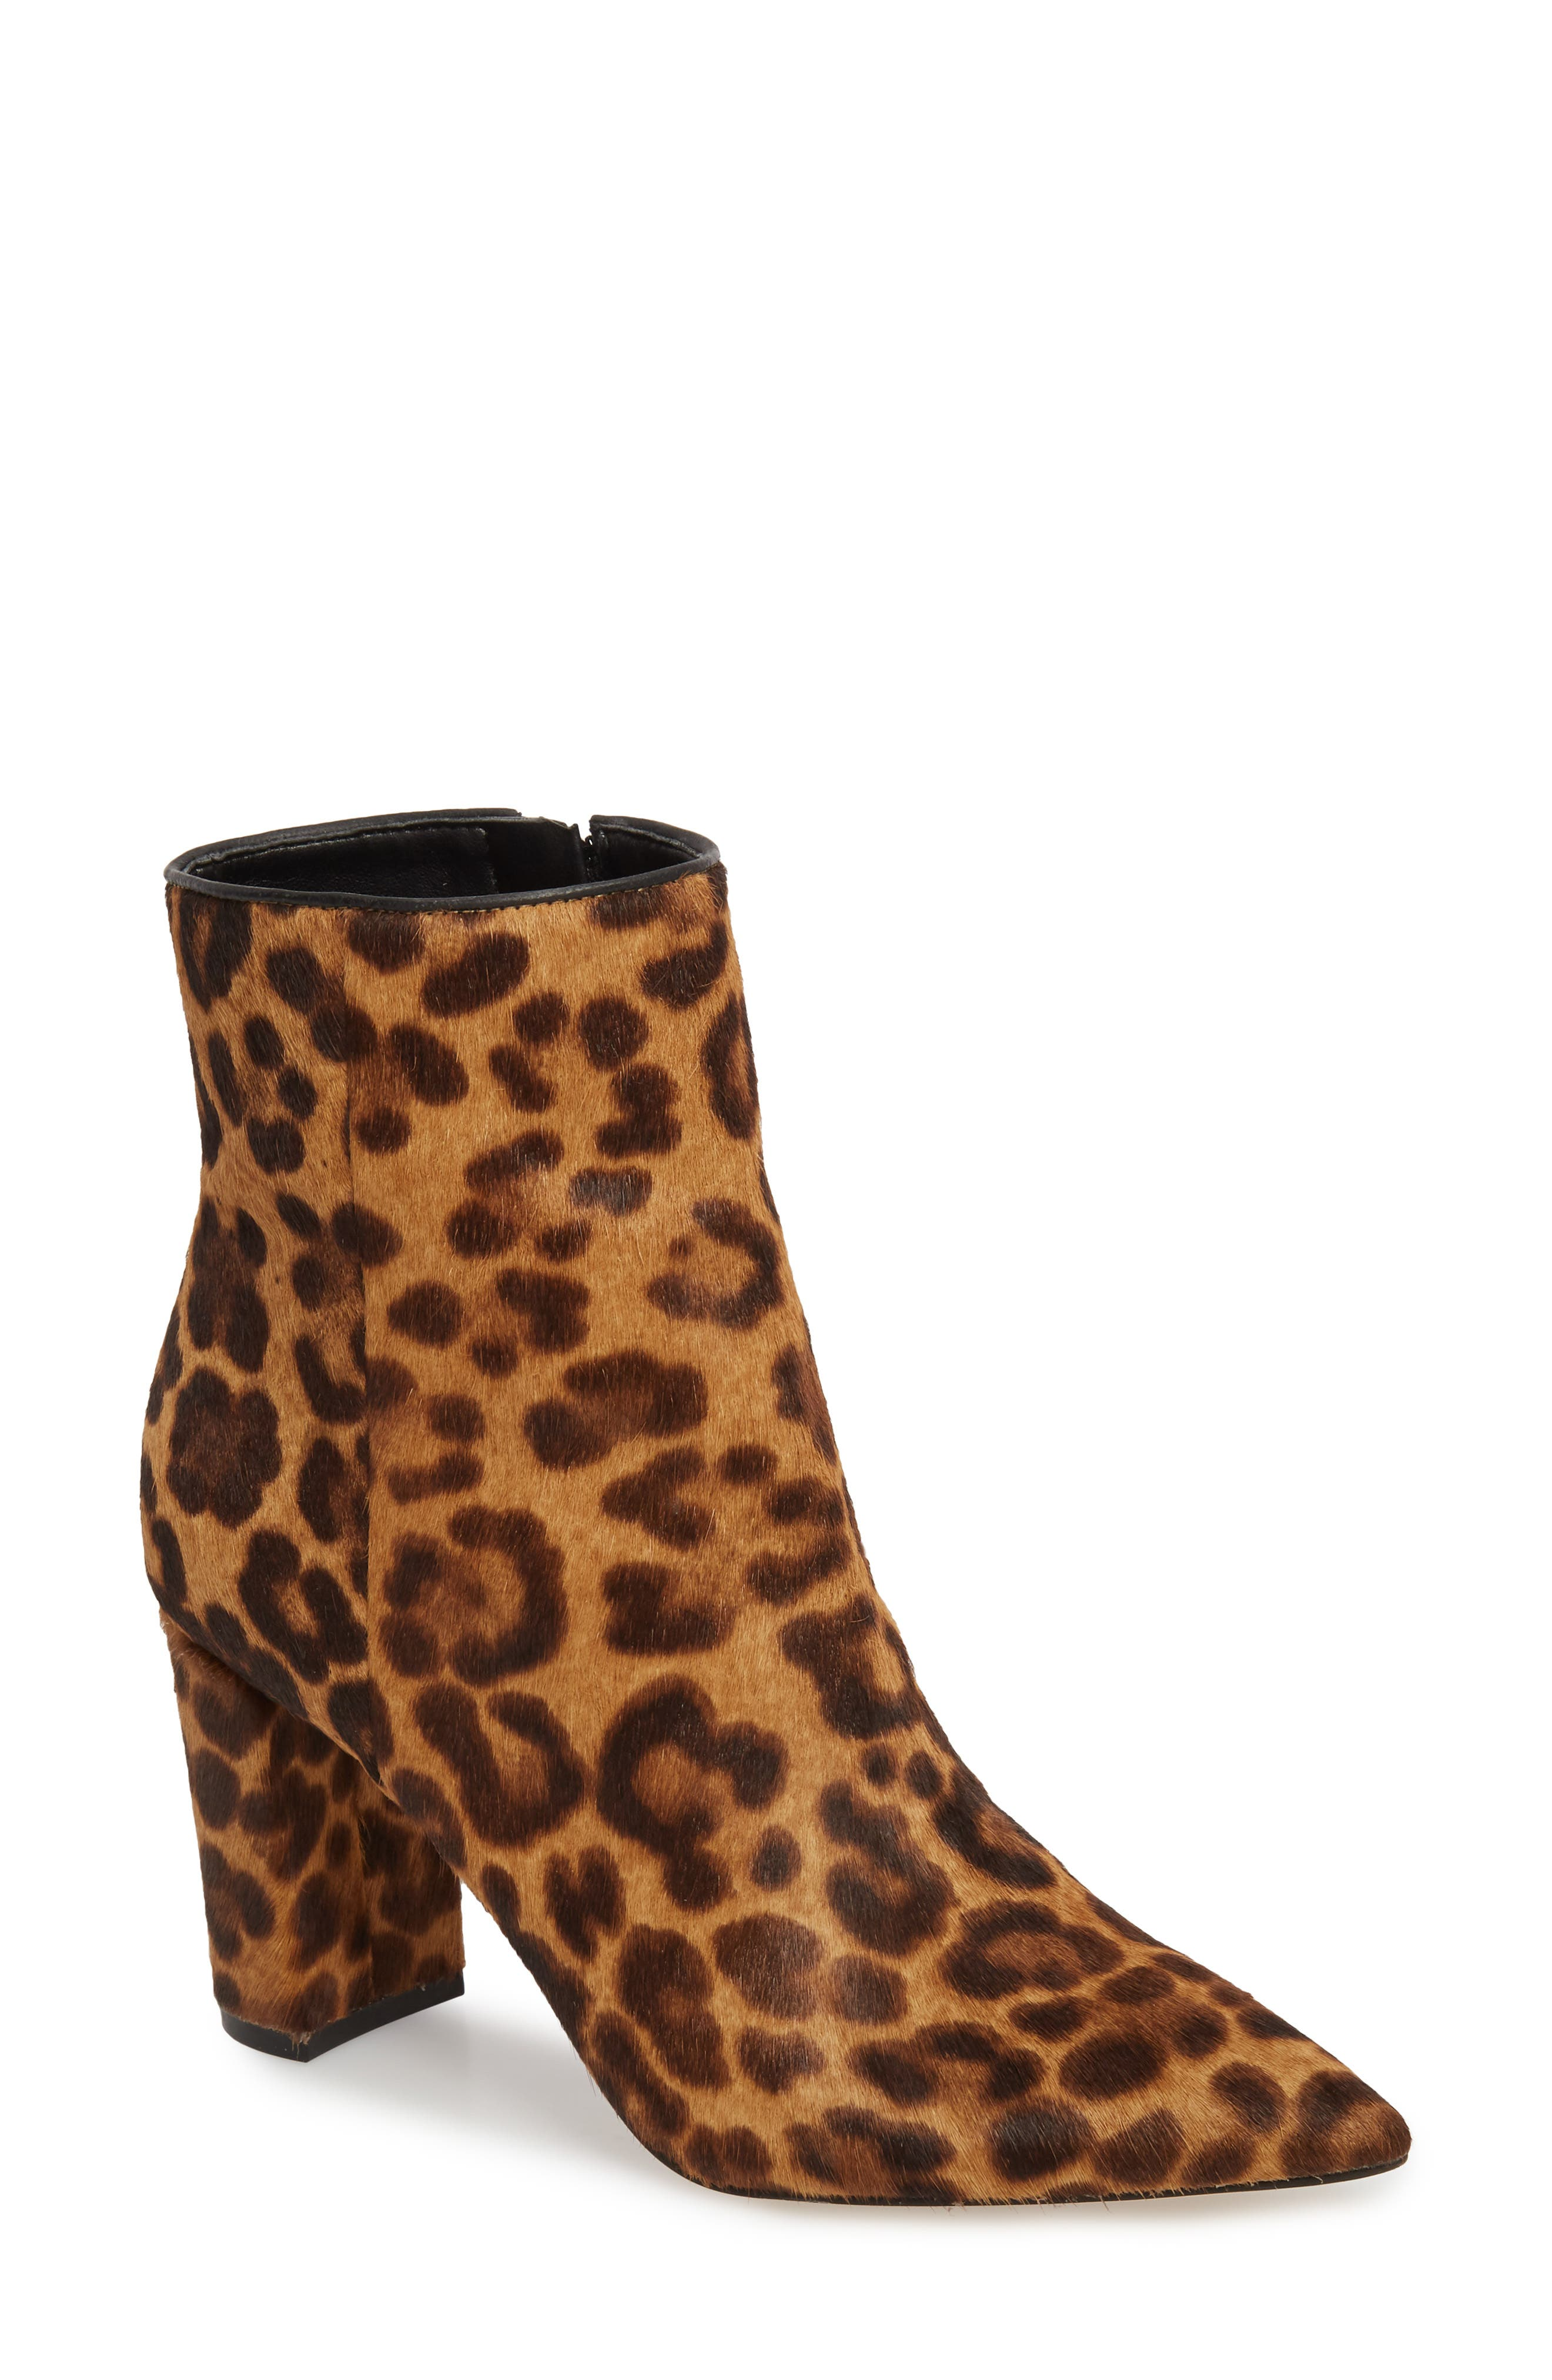 Marc Fisher Ltd Ulanily Pointy Toe Bootie, Brown